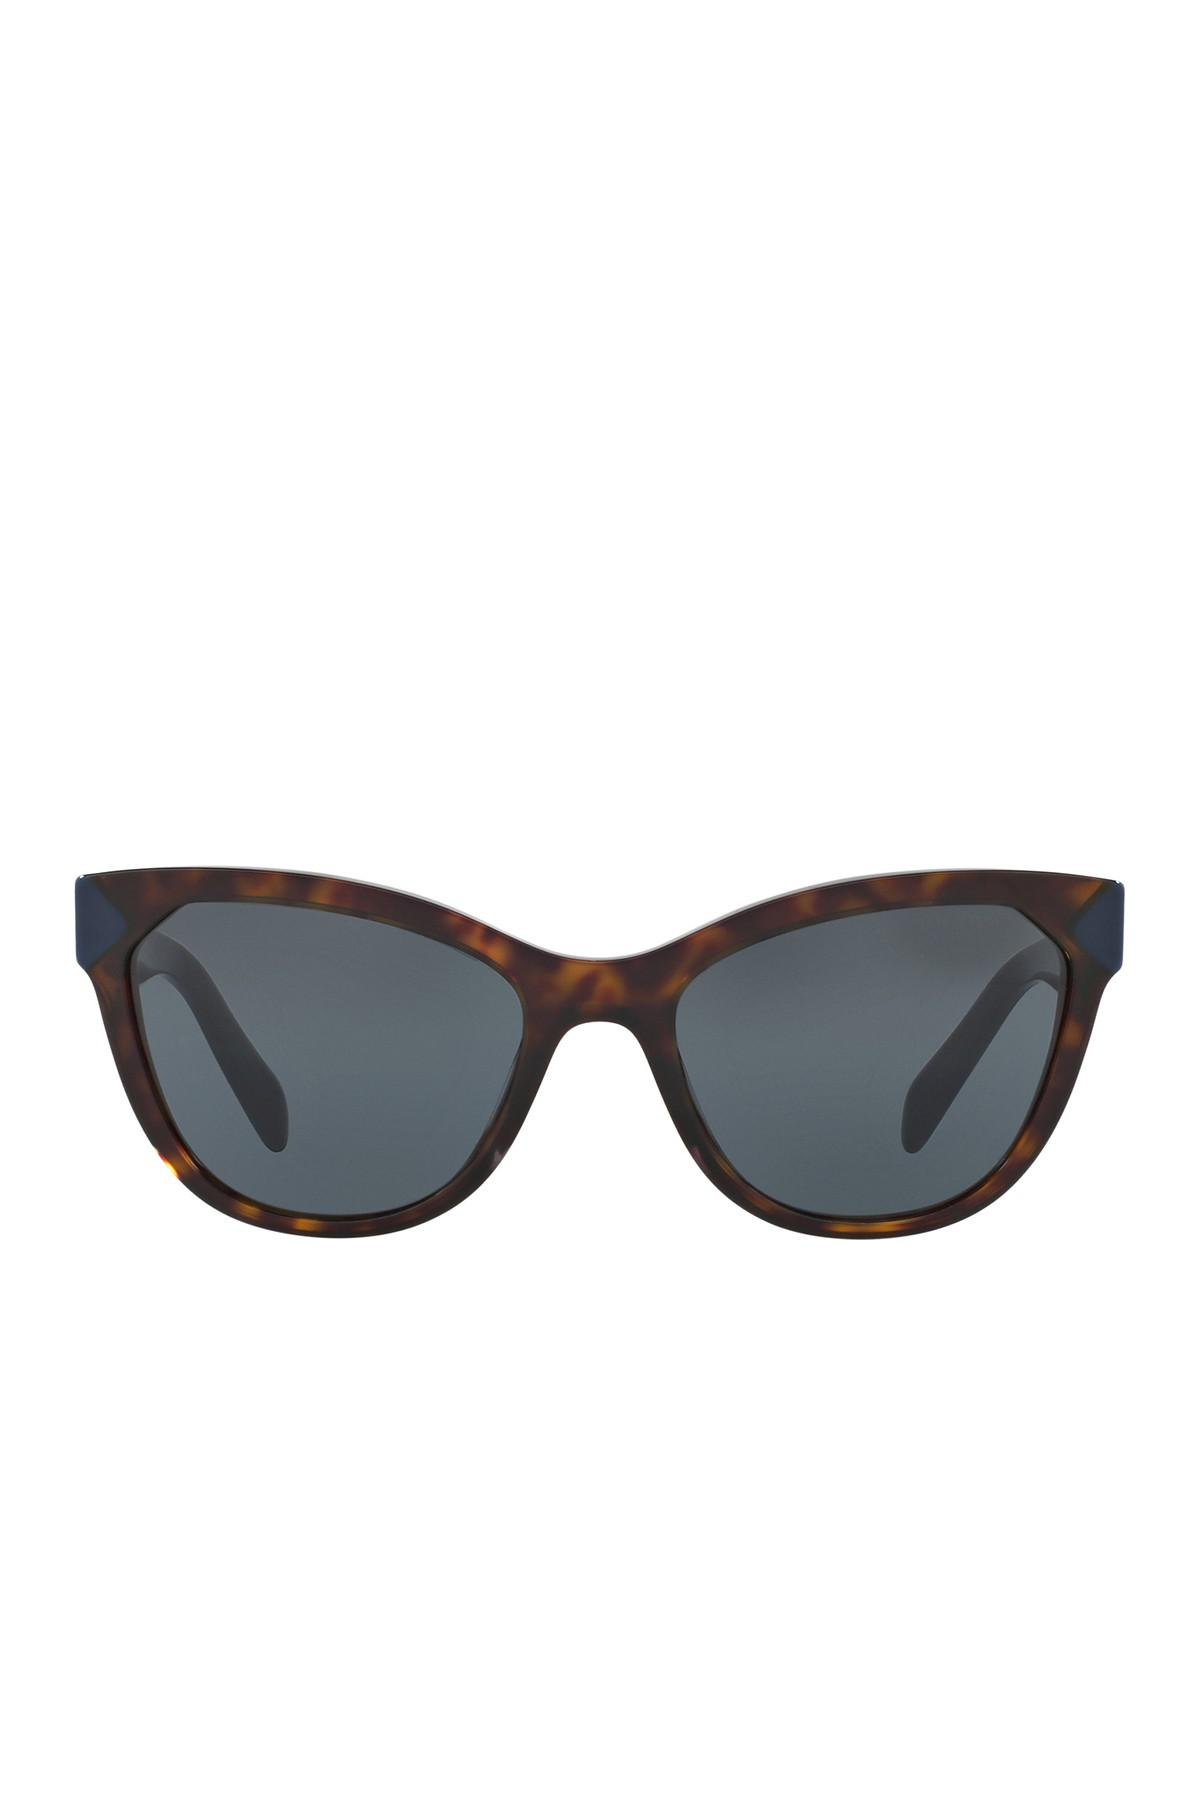 9d64b27fed3 ... best price prada 56mm heritage acetate cat eye sunglasses lyst 6856b  a759f